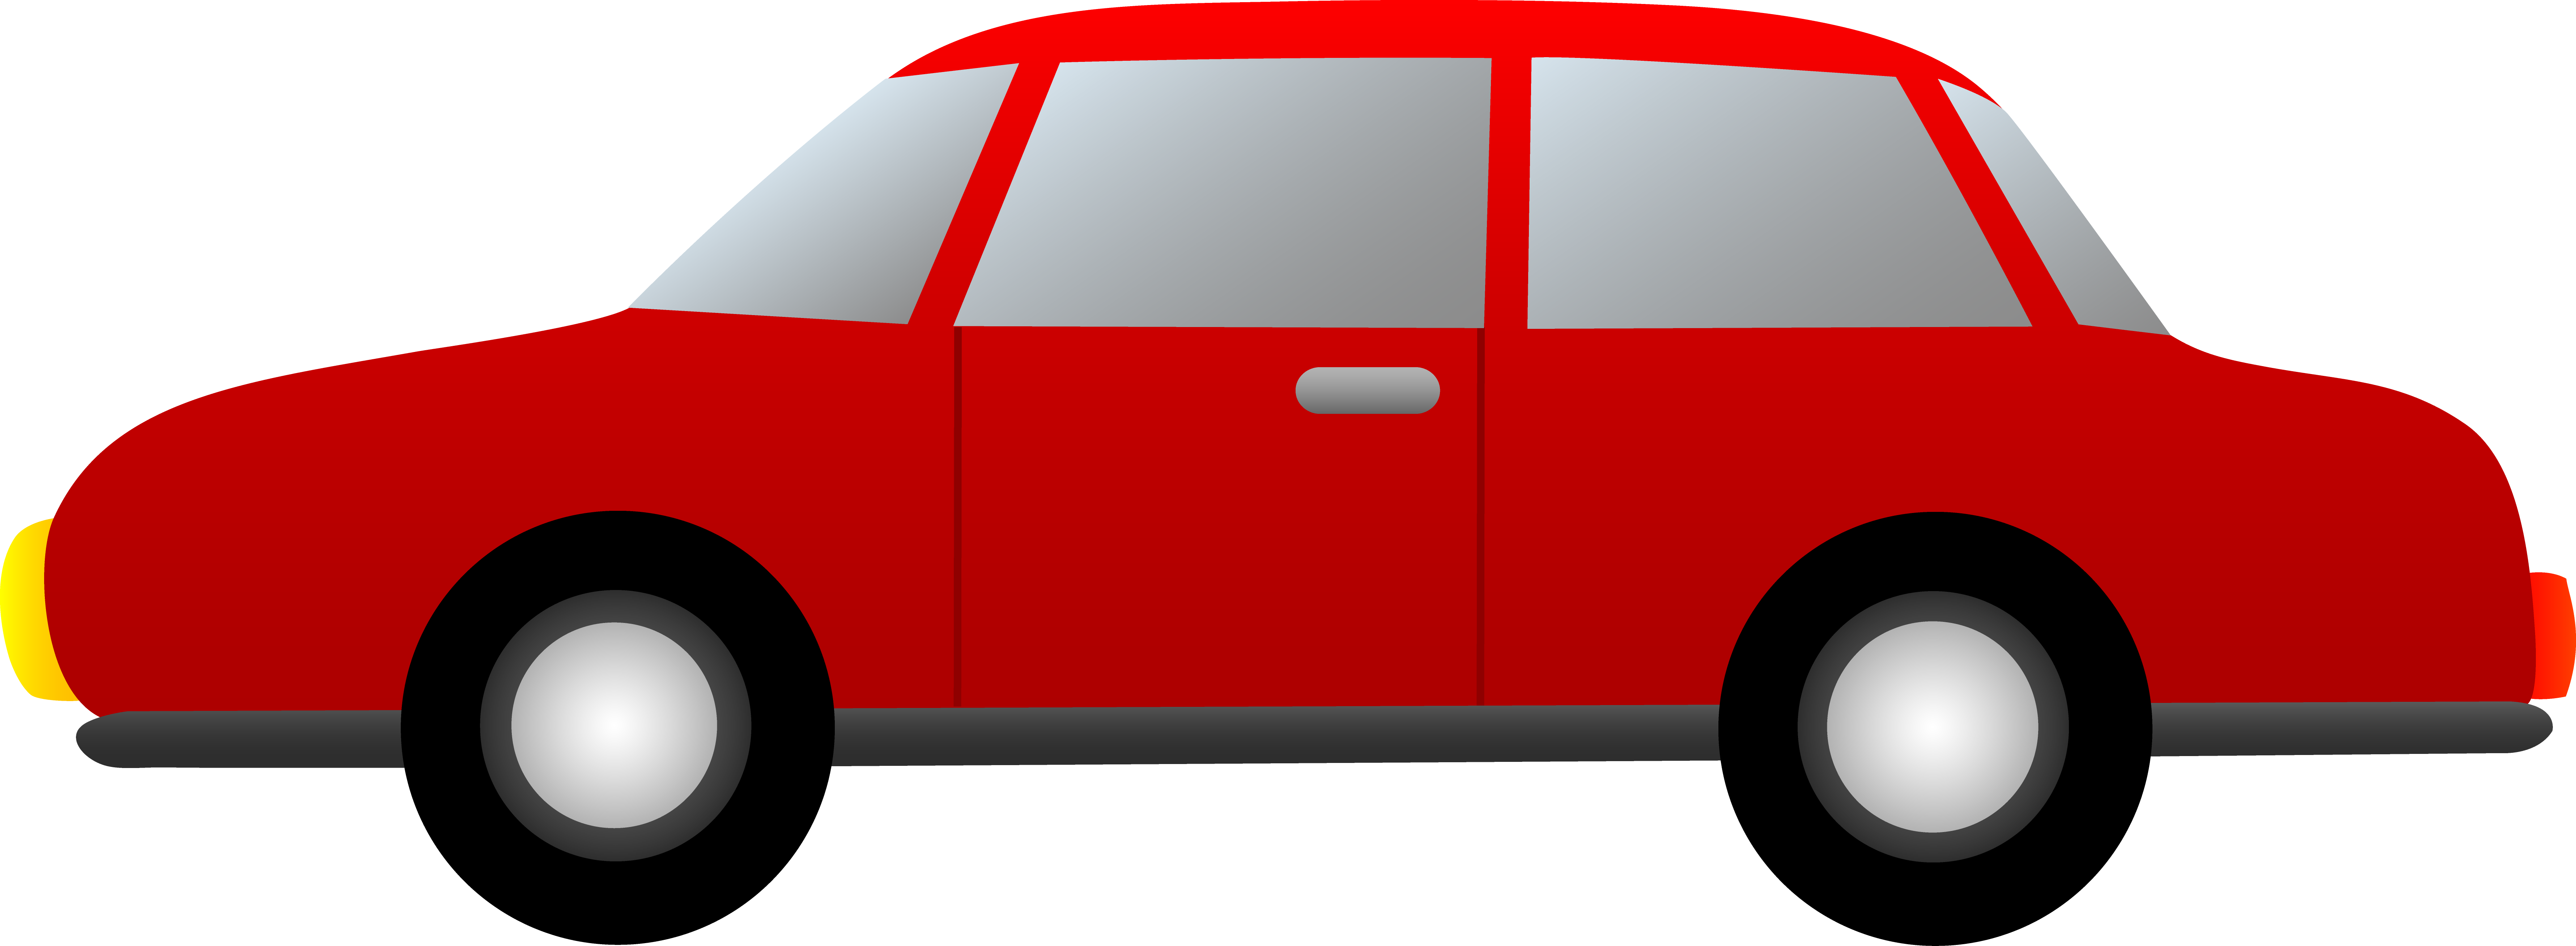 7122x2615 Sports Car Clipart Side View Free Clipart Images 2